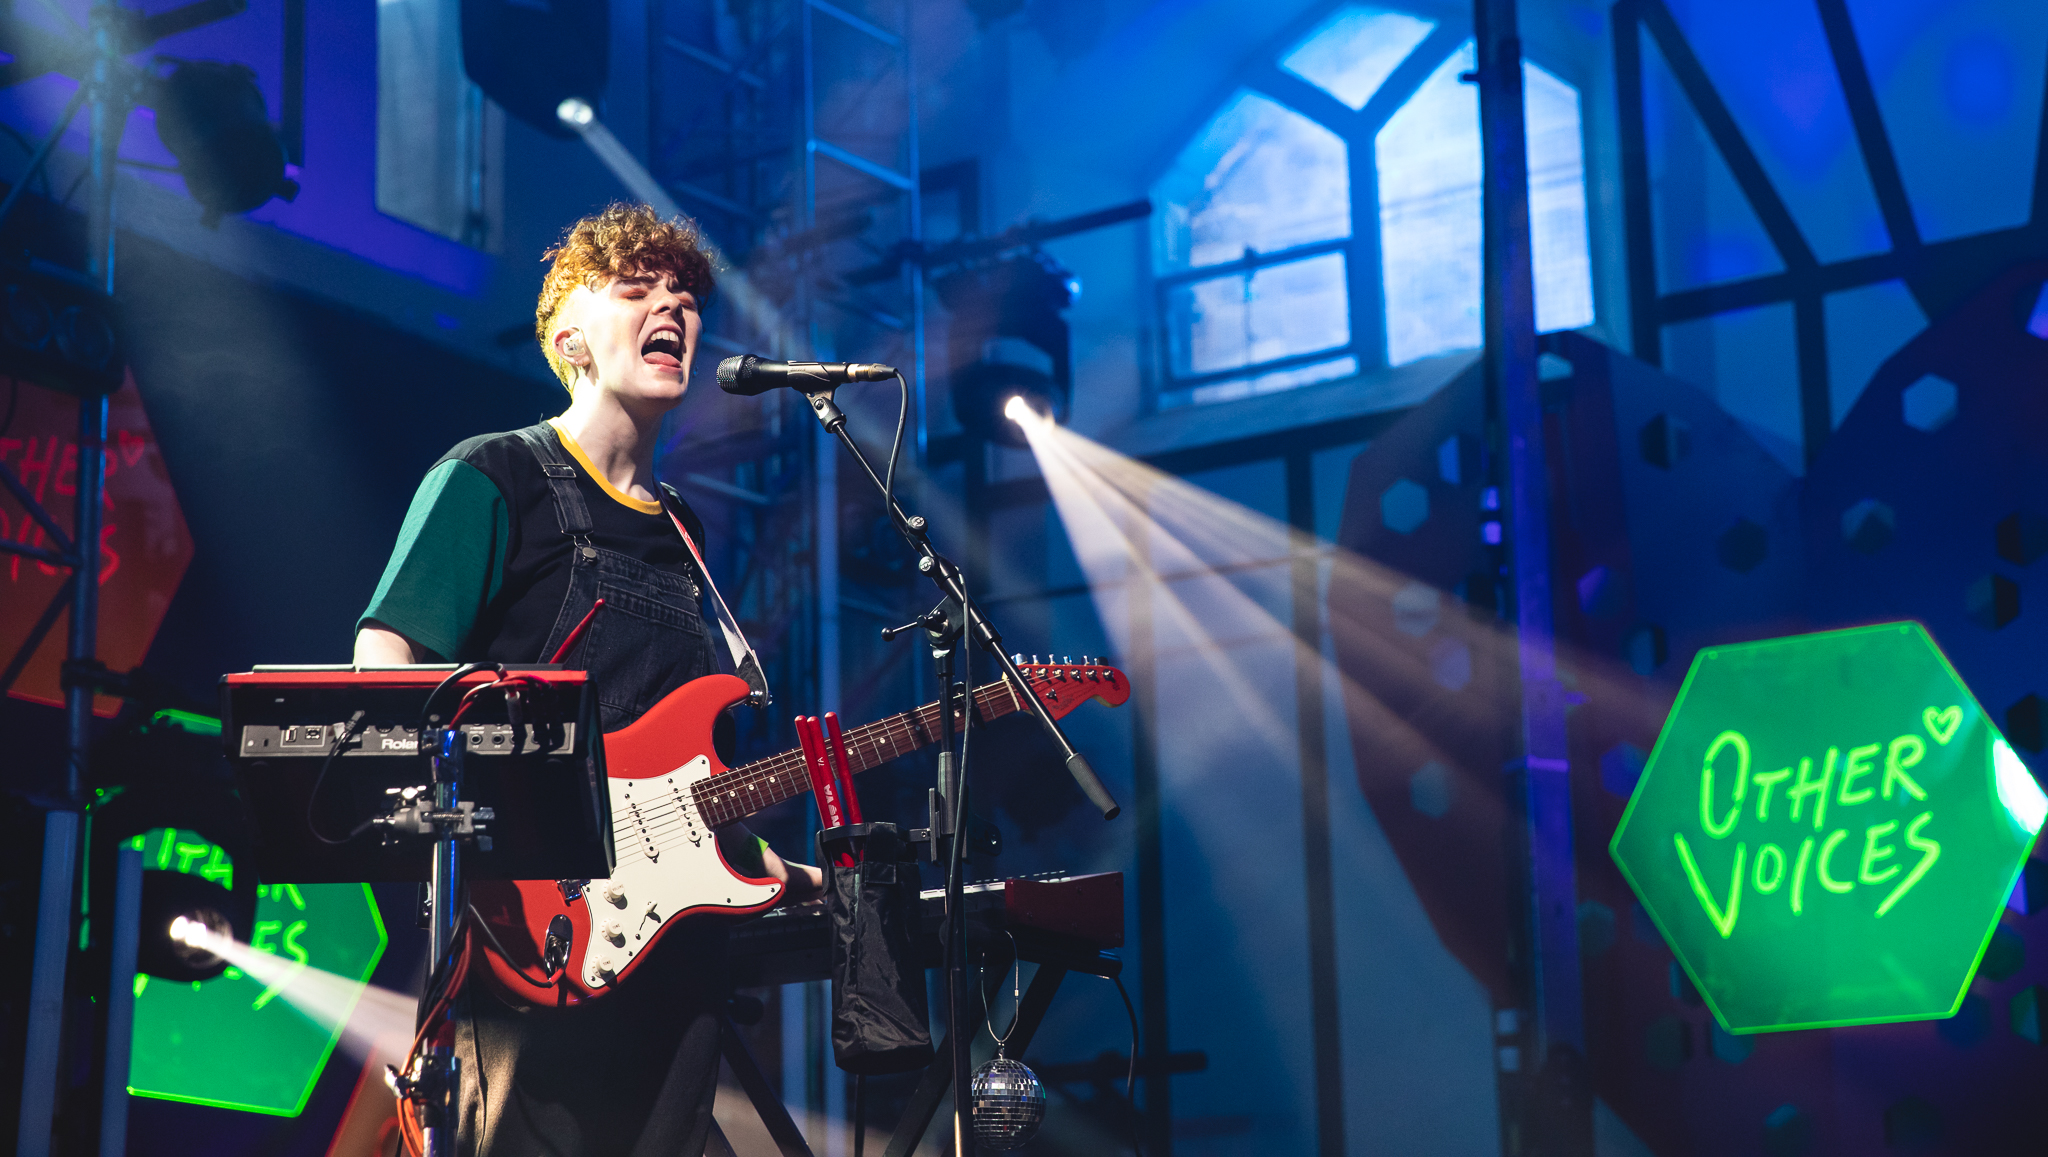 Roe_Other Voices_Belfast_LR-1023.jpg